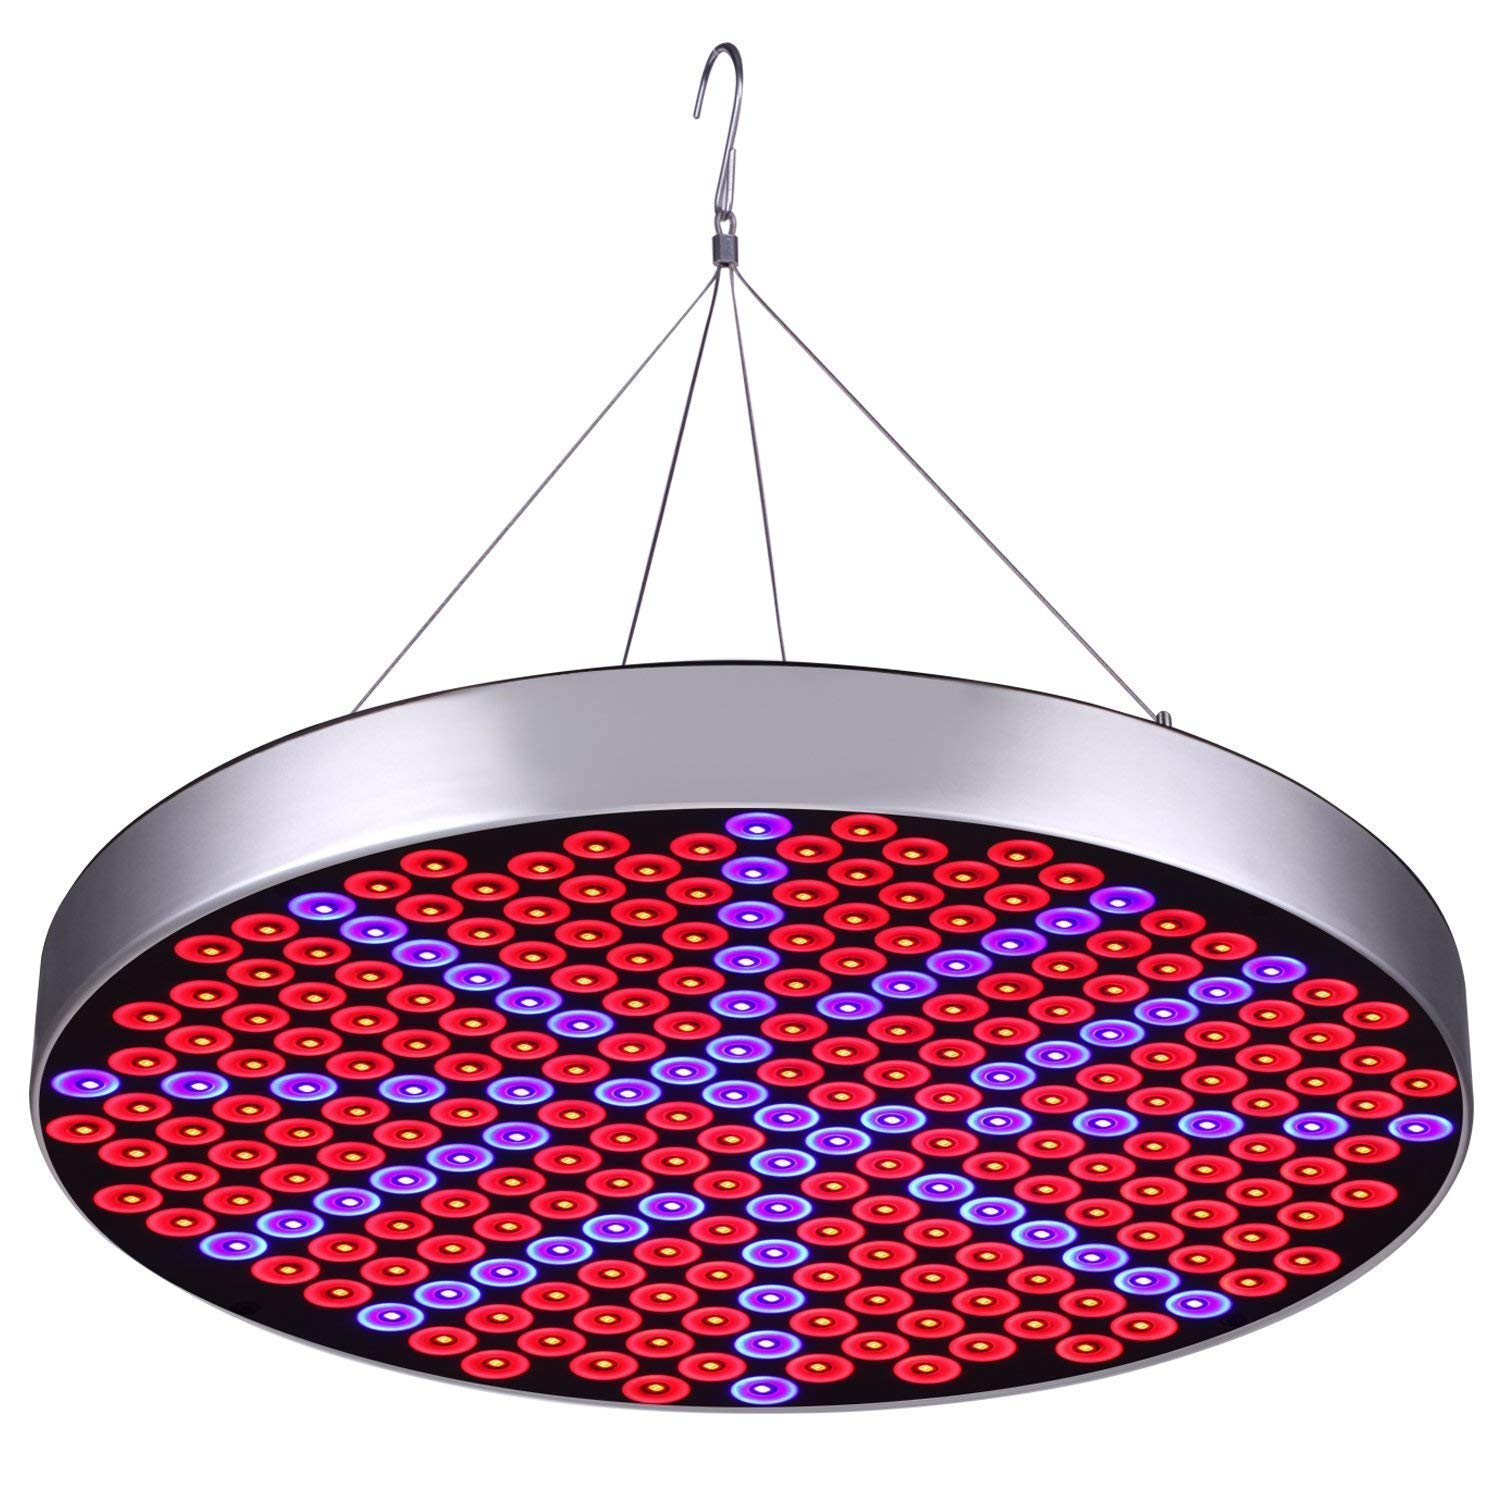 SODIAL LED Grow Light Bulb Panel 50W UFO Plant Growing Lamp with 250 LEDs Red Blue UV IR Full Spectrum Growing Lights for Indoor Plants, ed Starting, edling, Veg and Flower by Emasun (US Plug)